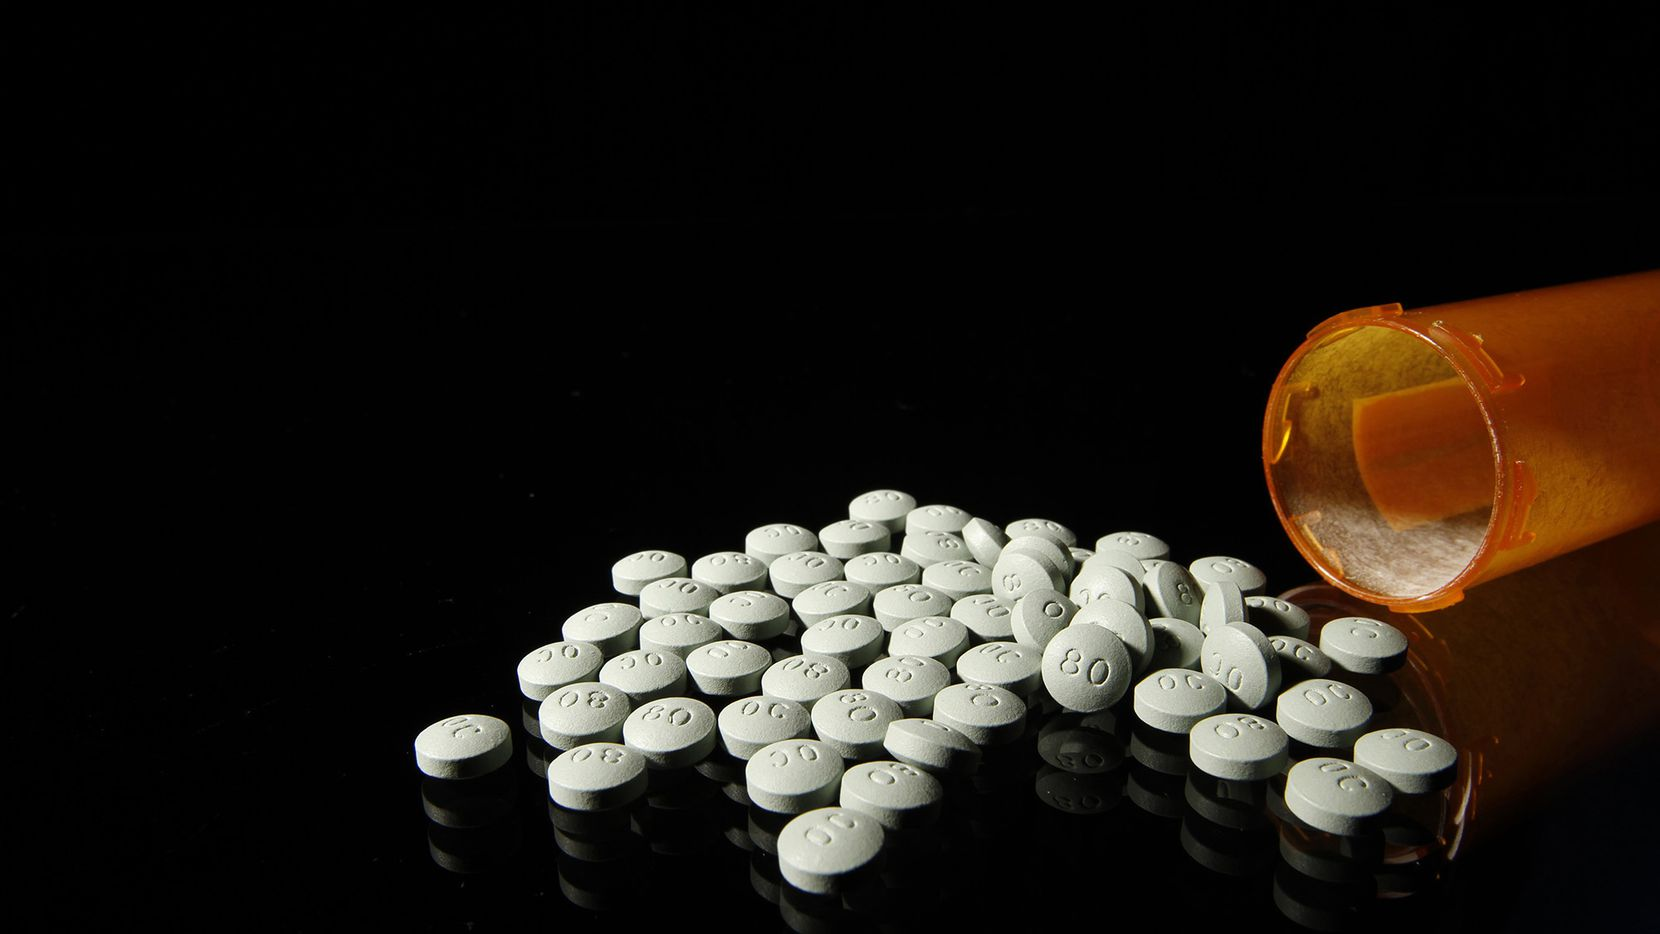 OxyContin carries a high risk for addiction and dependence, medical experts say. It is especially dangerous when mixed with alcohol.